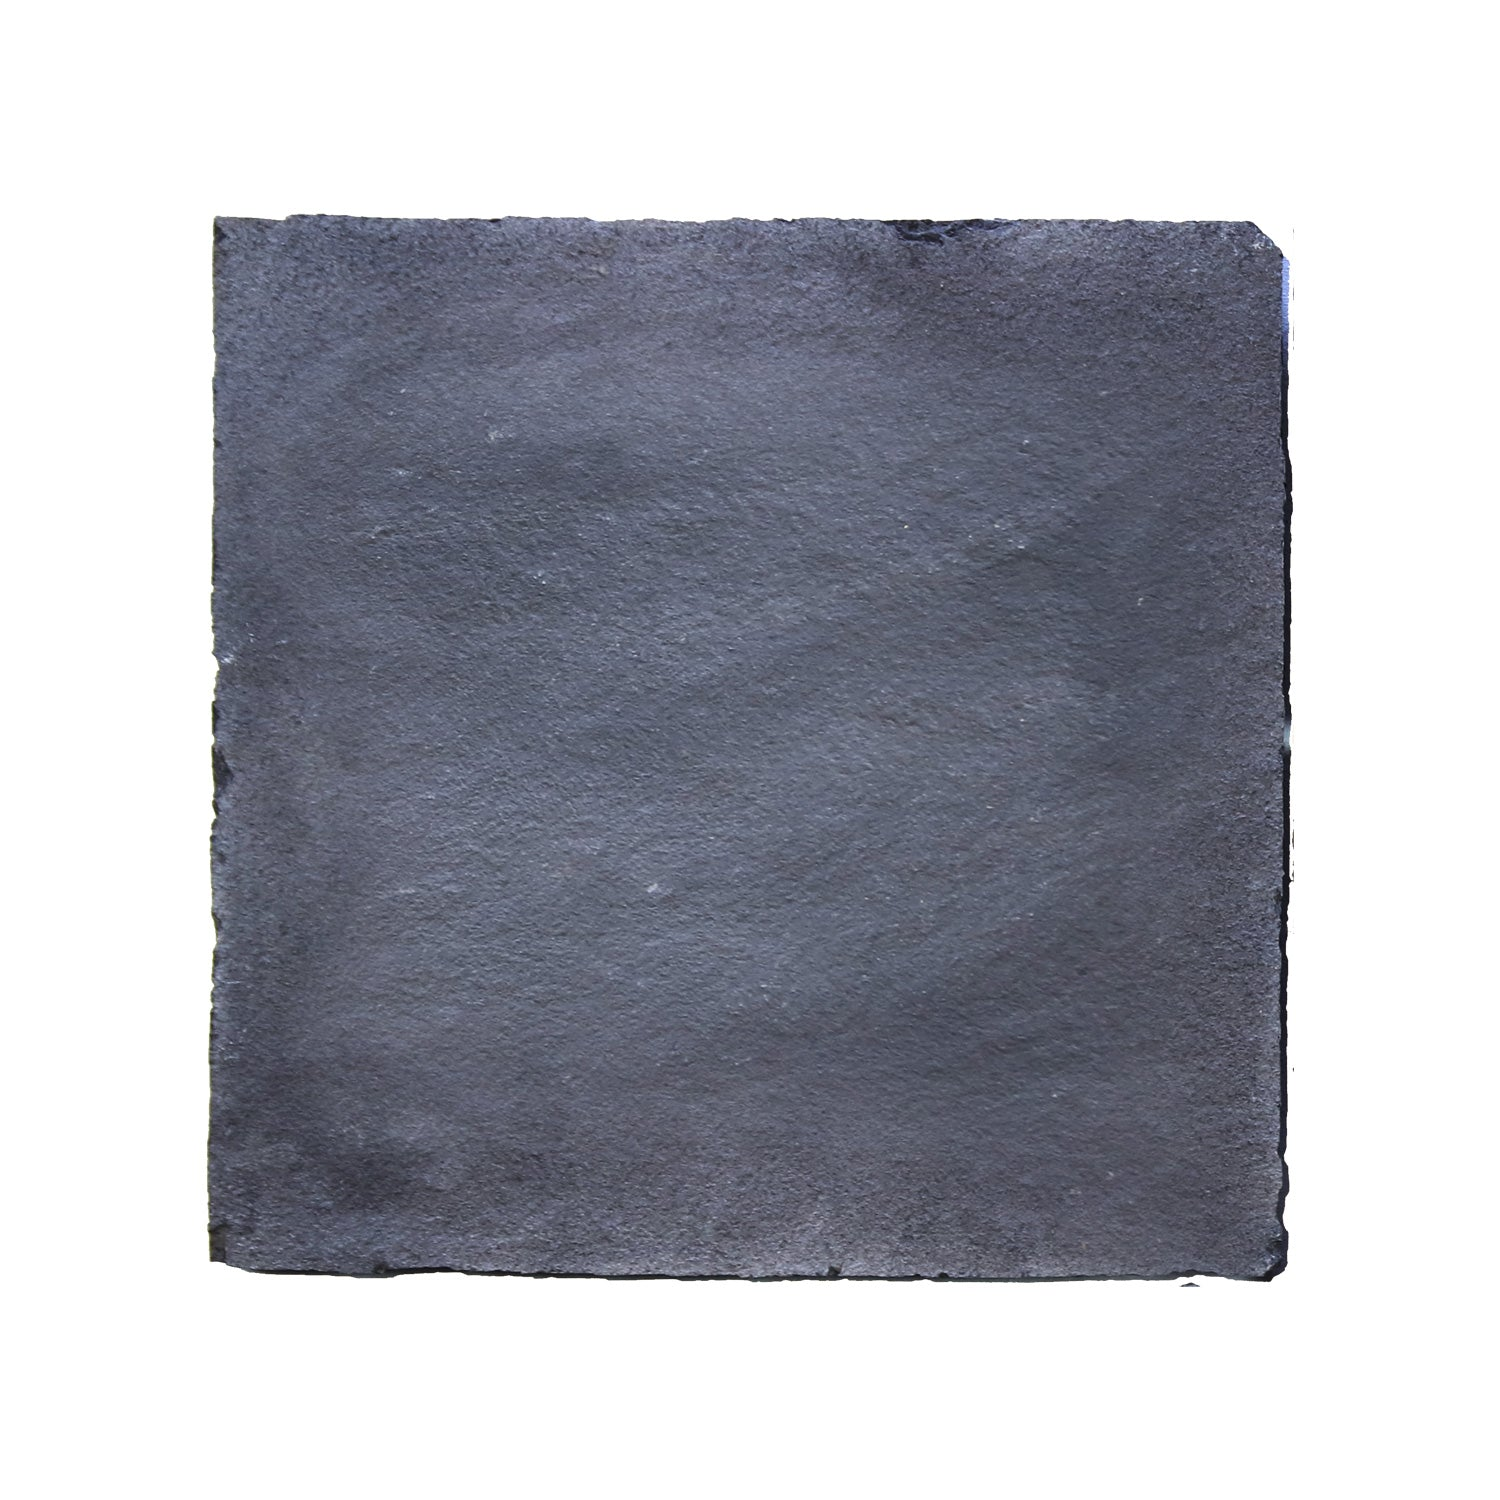 Black Limestone 600mm x 600mm (38pk)